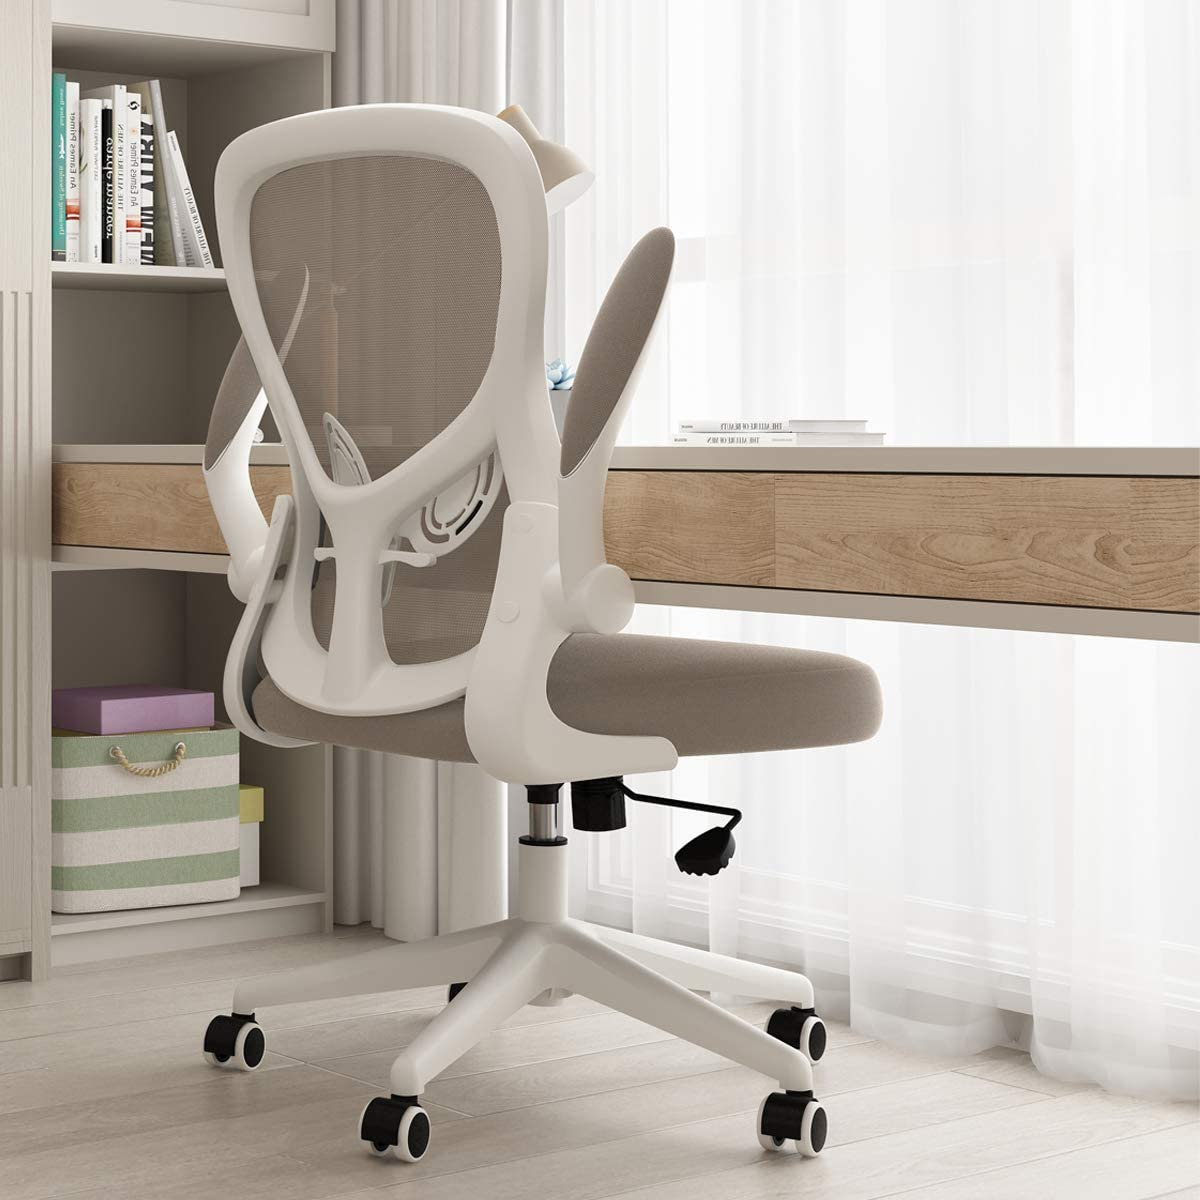 Hbada Office Chair, Ergonomic Desk Chair, Computer Mesh Chair with Lumbar Support and Flip-up Arms, Gray